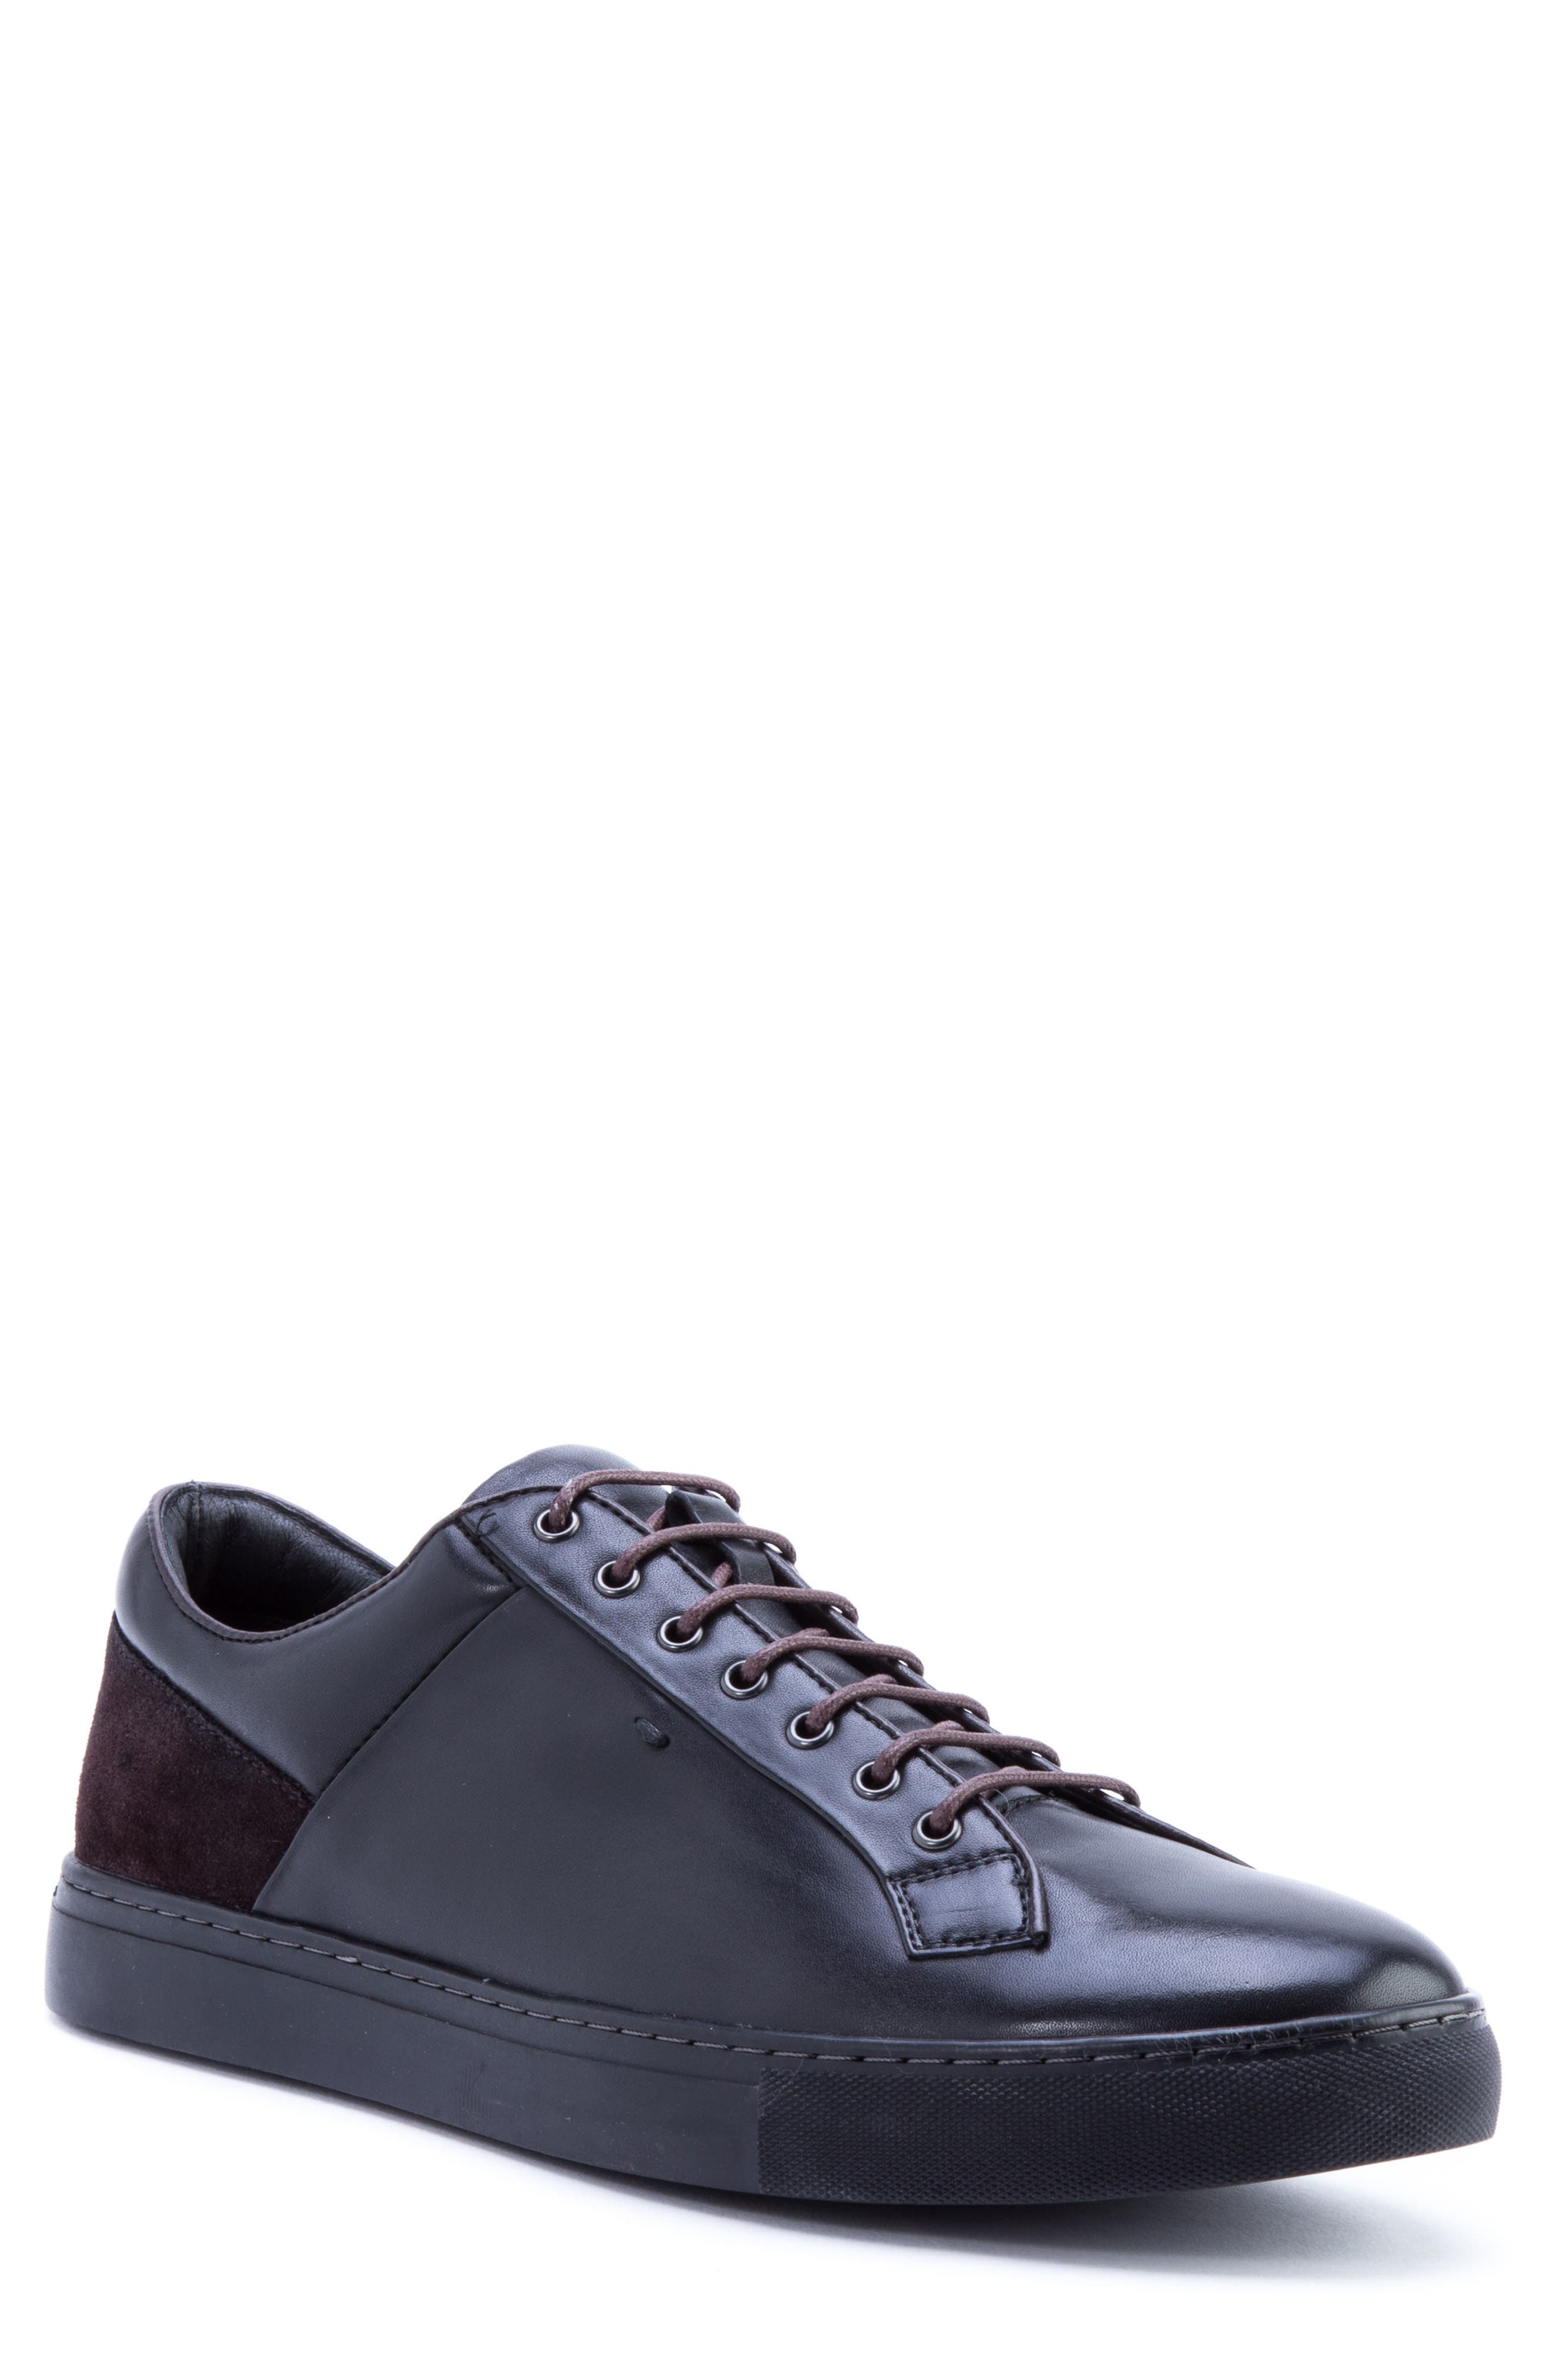 Pitch Low Top Sneaker,                         Main,                         color, BLACK LEATHER/ SUEDE